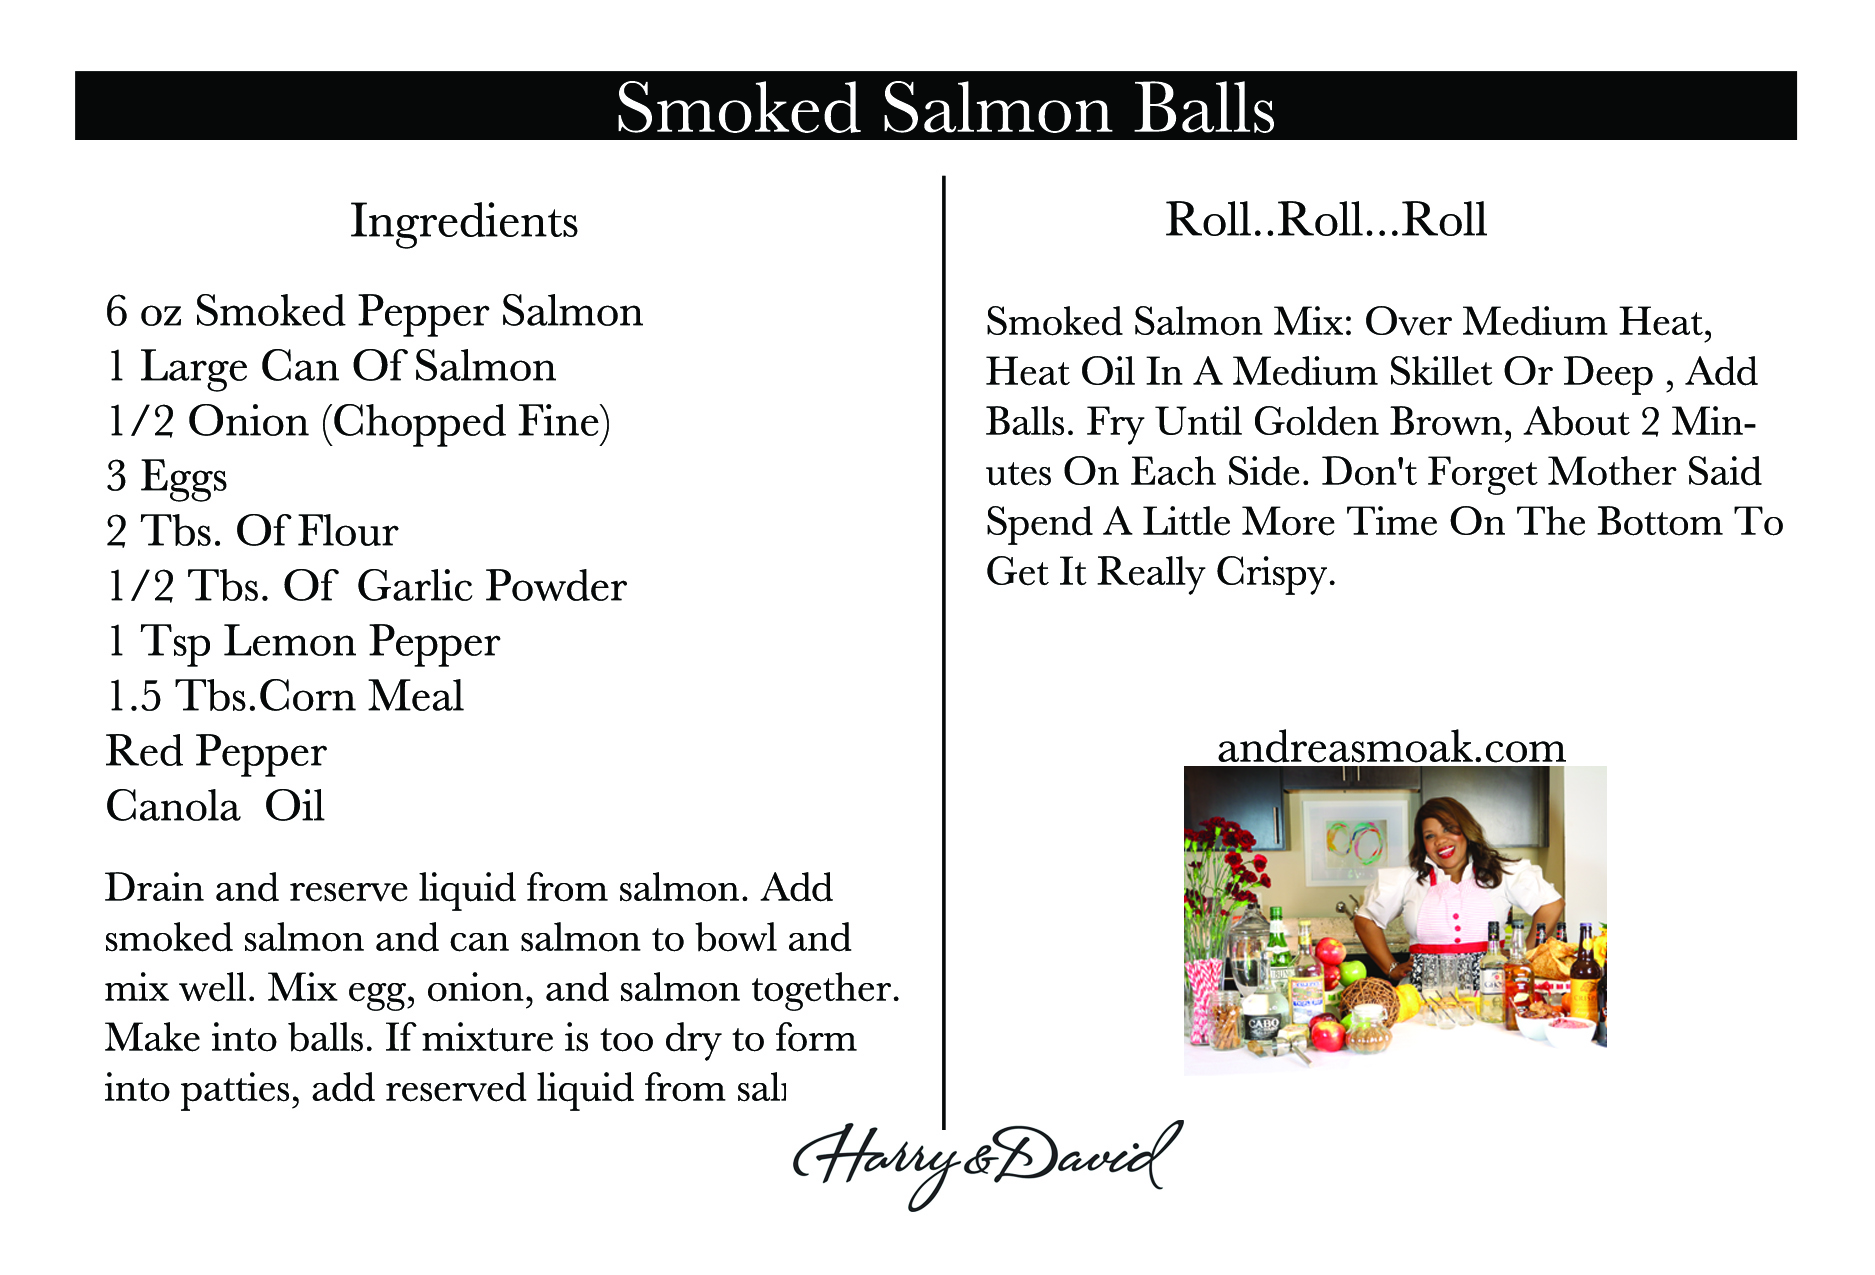 Smoked_Salmon_Recipe_Card_Ingredients.jpg